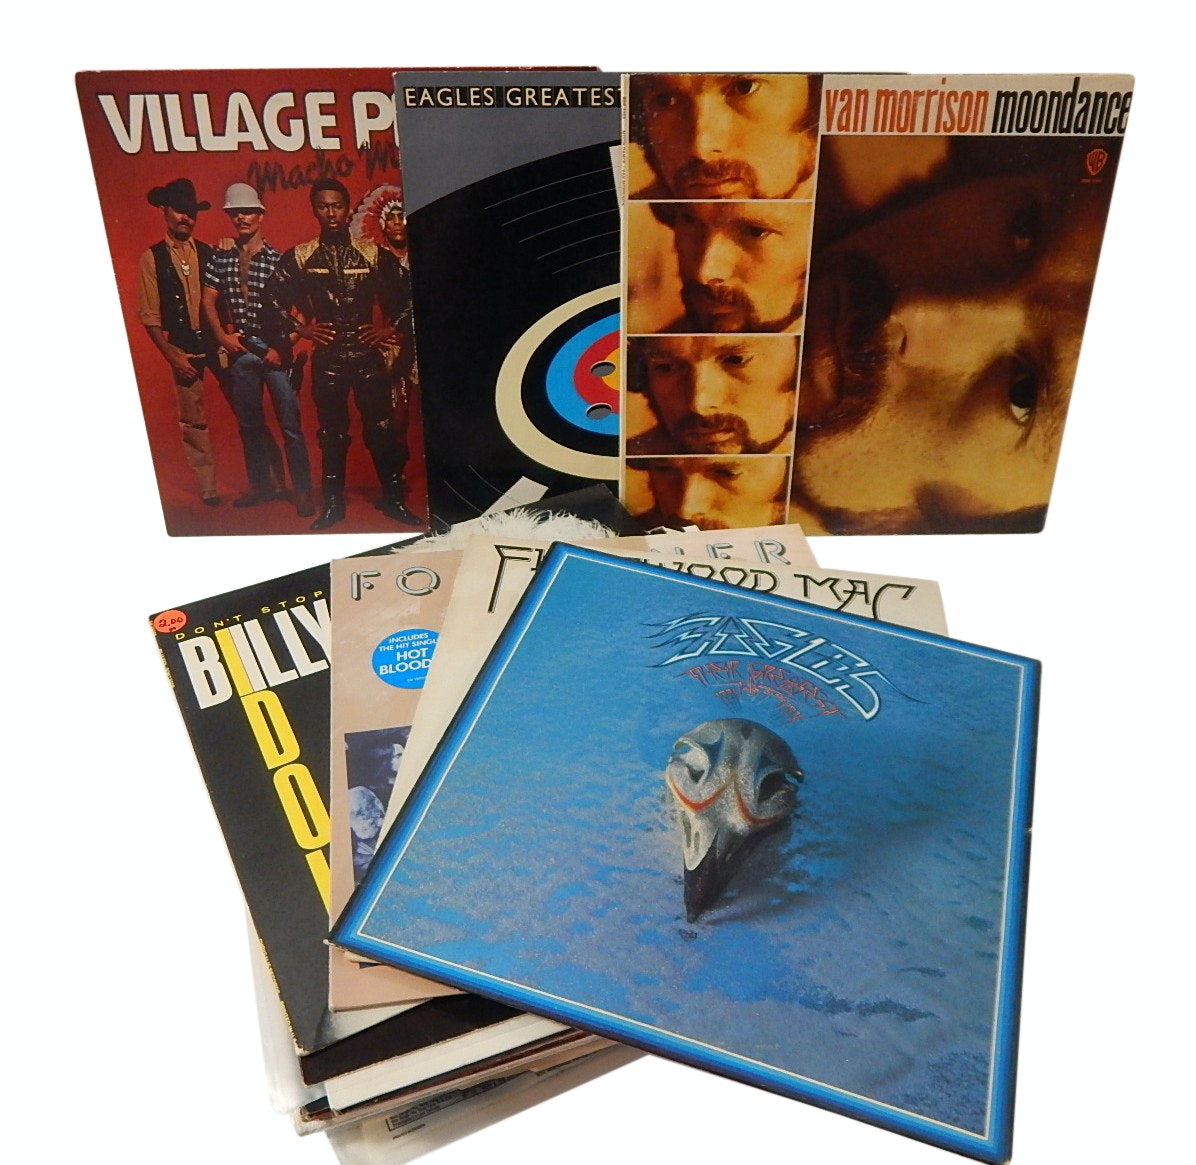 Vintage 33 RPM Record Album Collection with Classic Rock and Pop